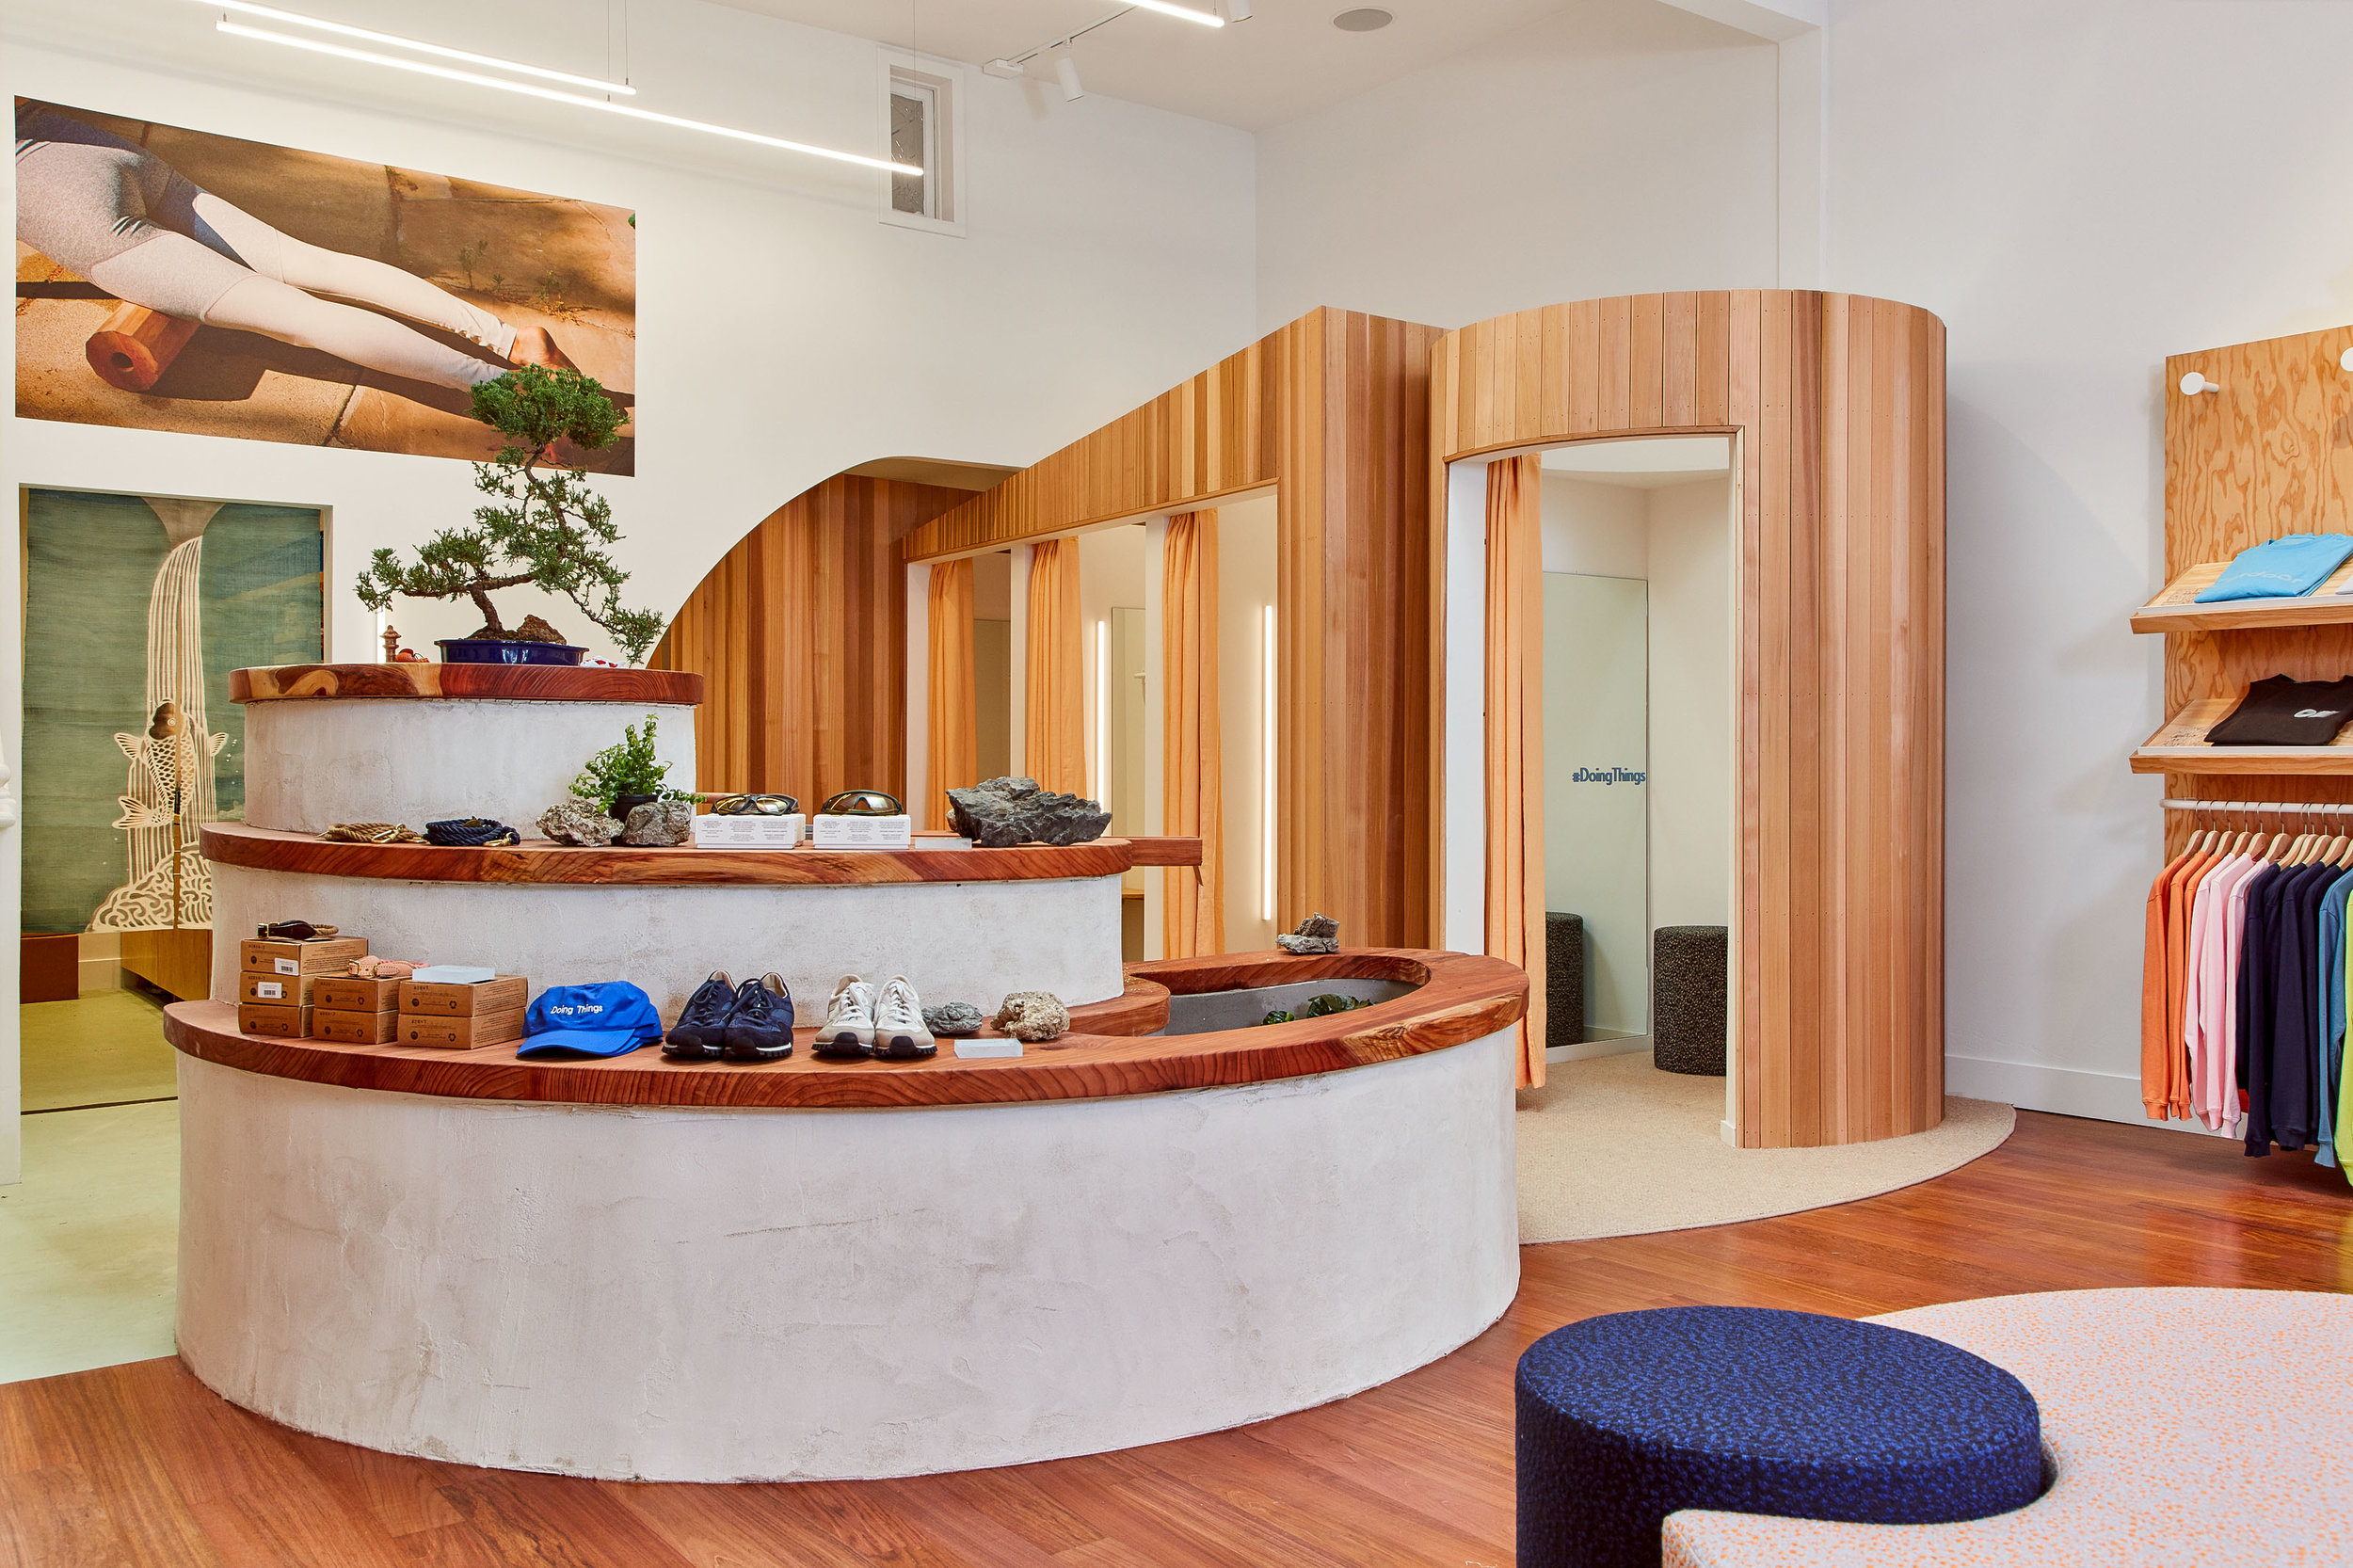 Bob Cut Mag U2014 Shop Talk: Outdoor Voices Moves Into Hayes Valley And Their Interior  Design Game Is Fire